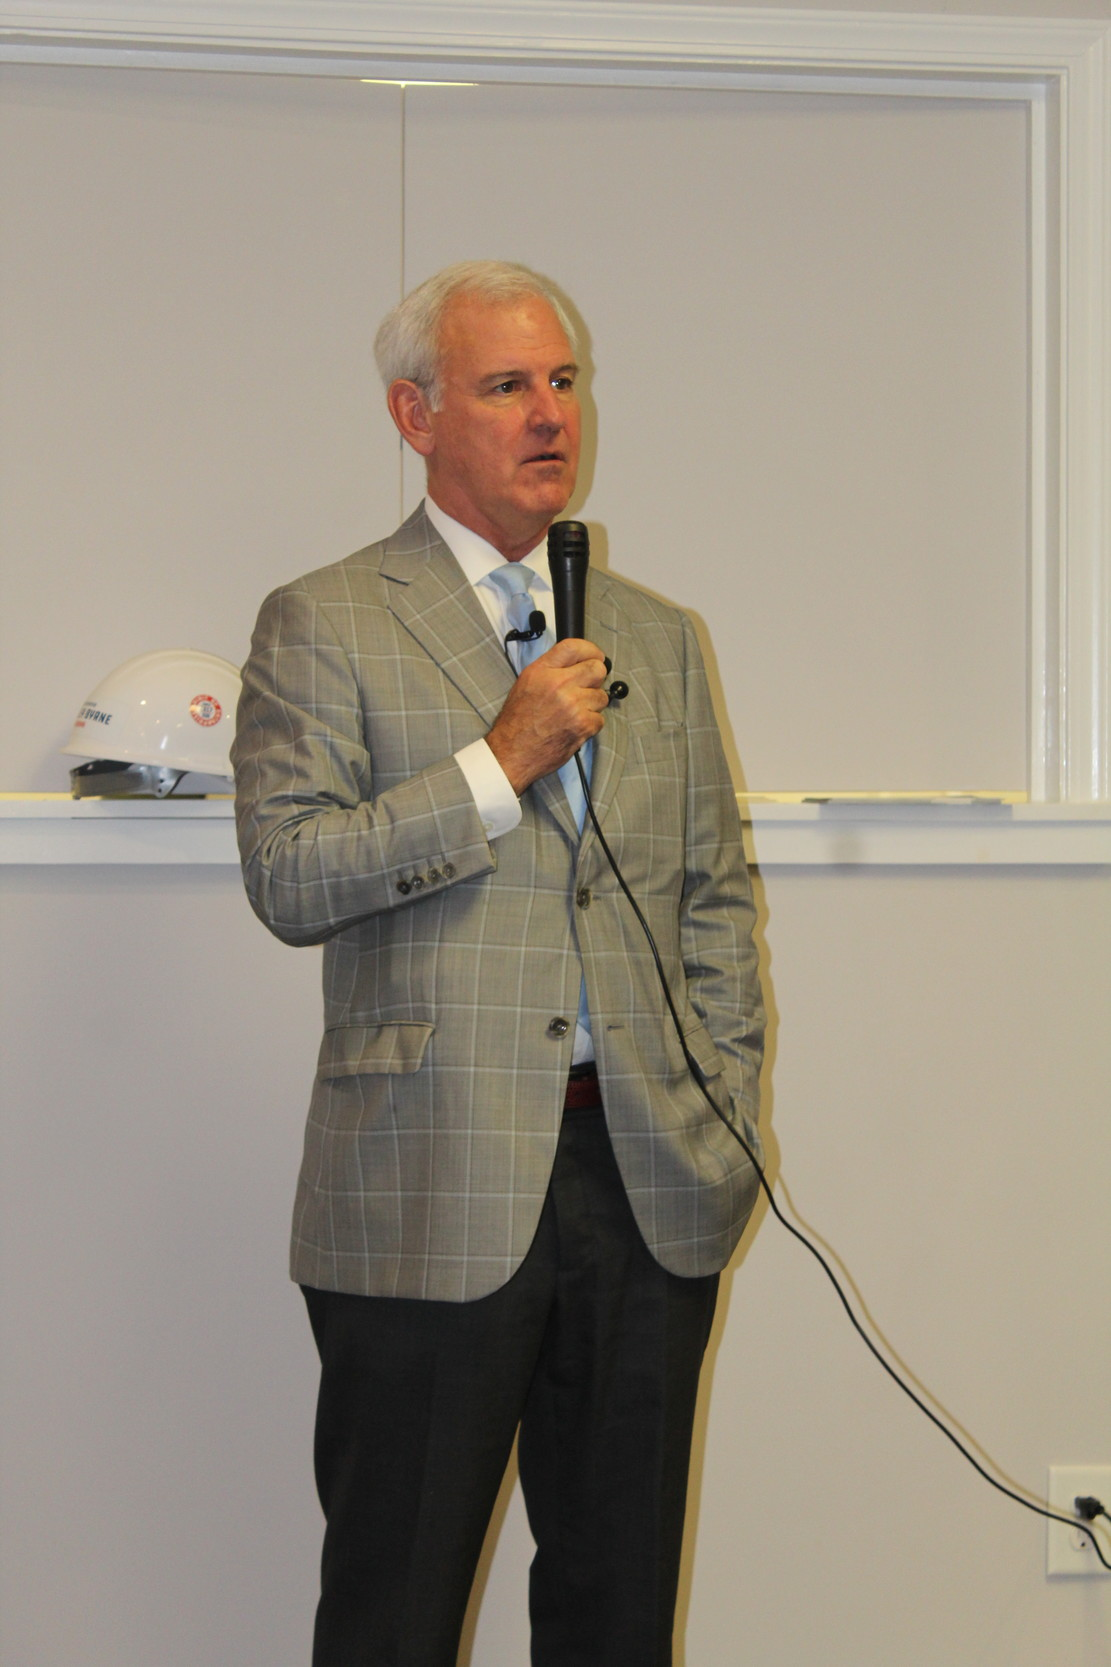 Congressman Bradley Byrne announced Wednesday morning in Bay Minette he would not be seeking election as governor of Alabama in 2018.